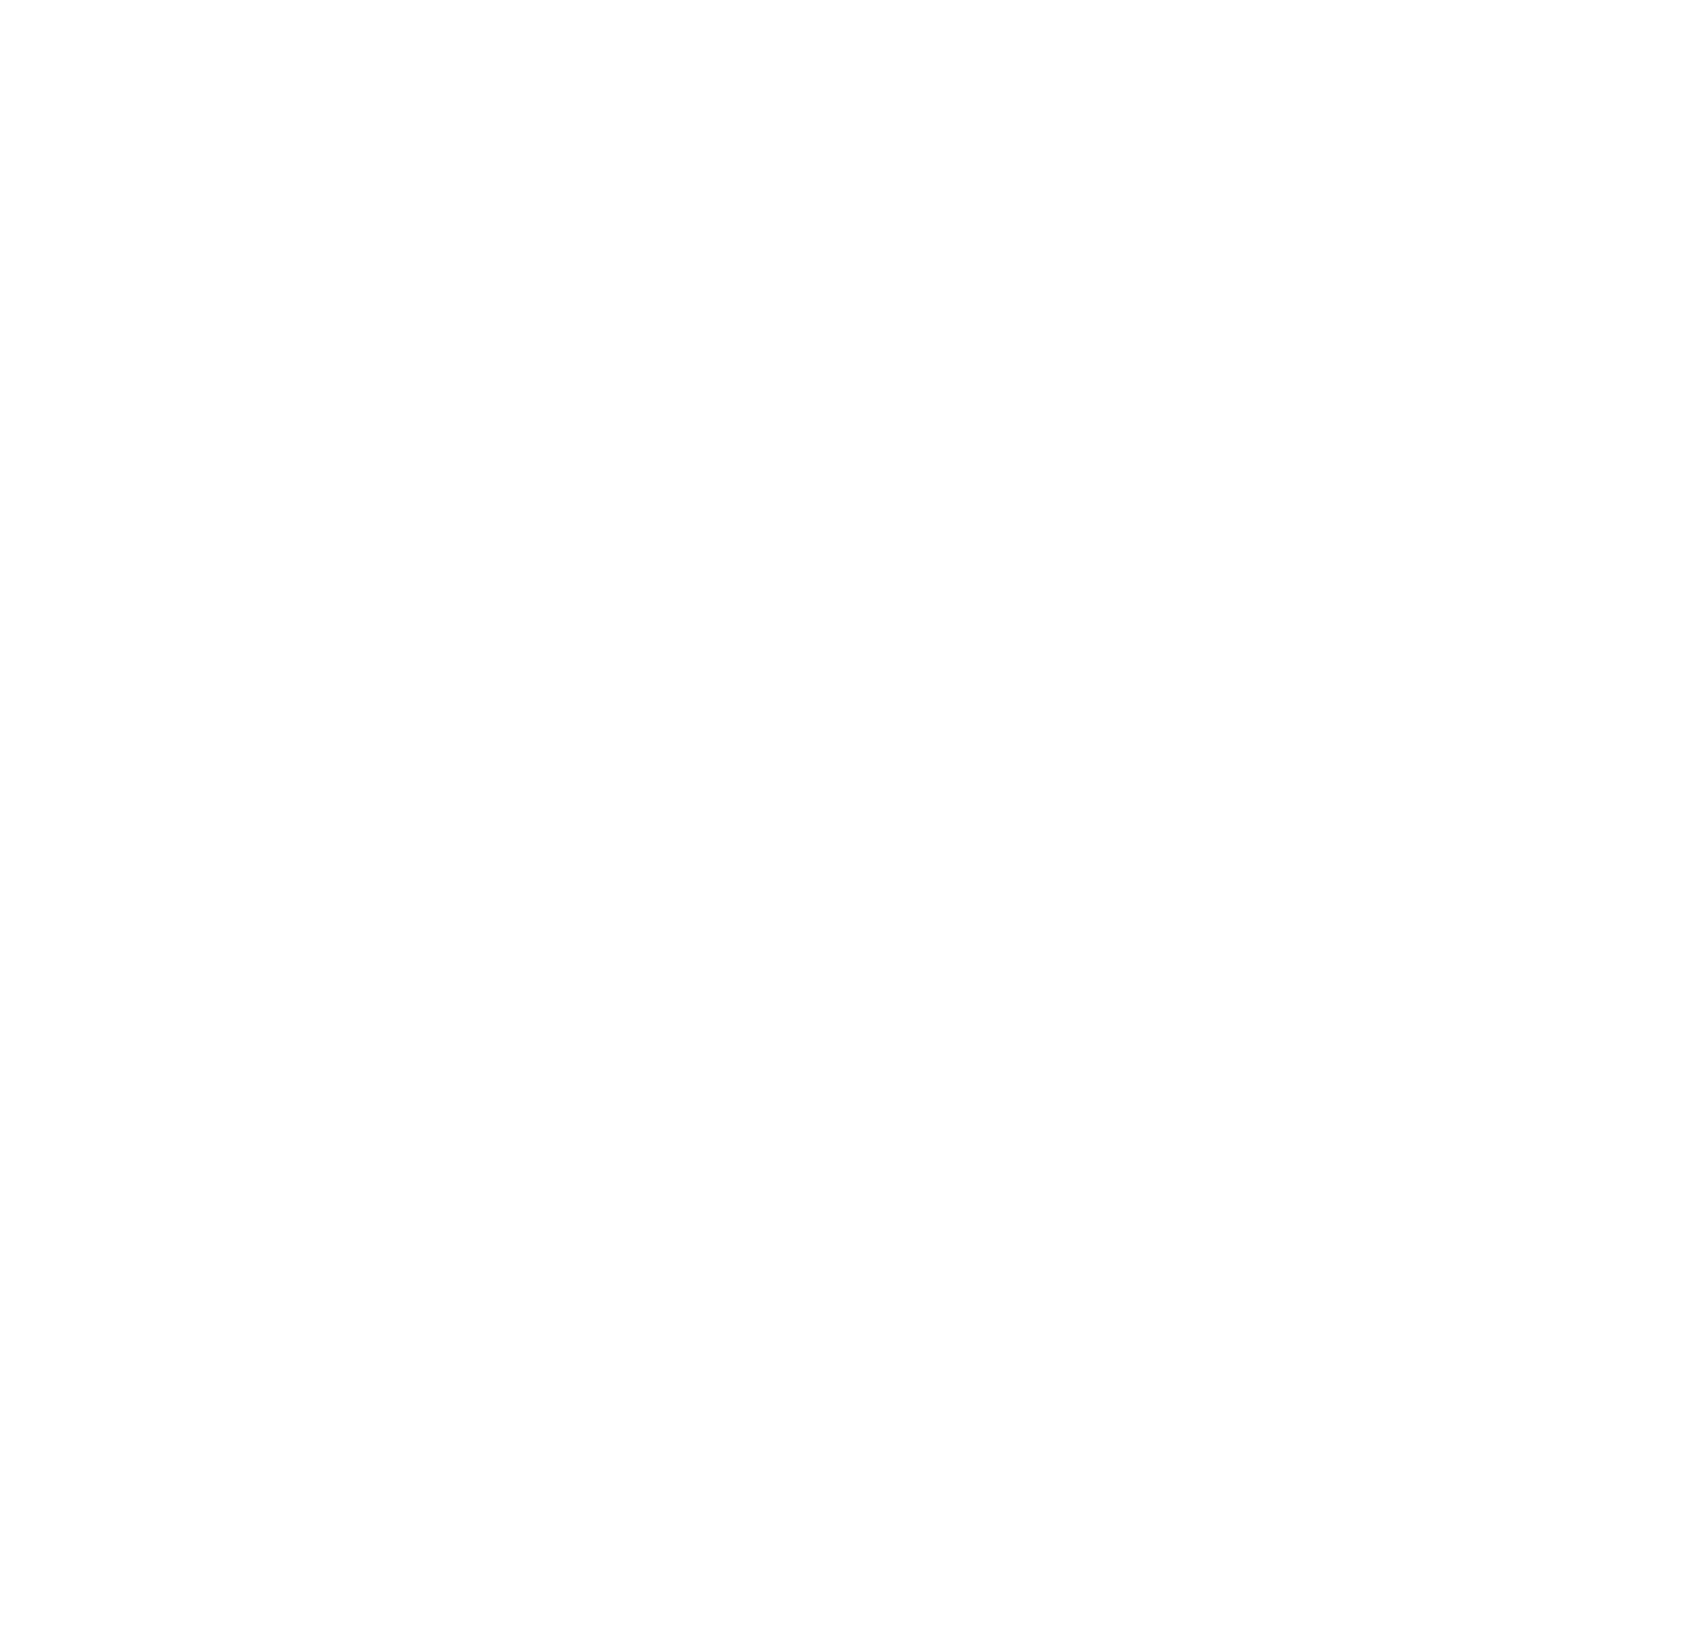 Awarded TripAdvisor's Travelers' Choice 2013 - 2014